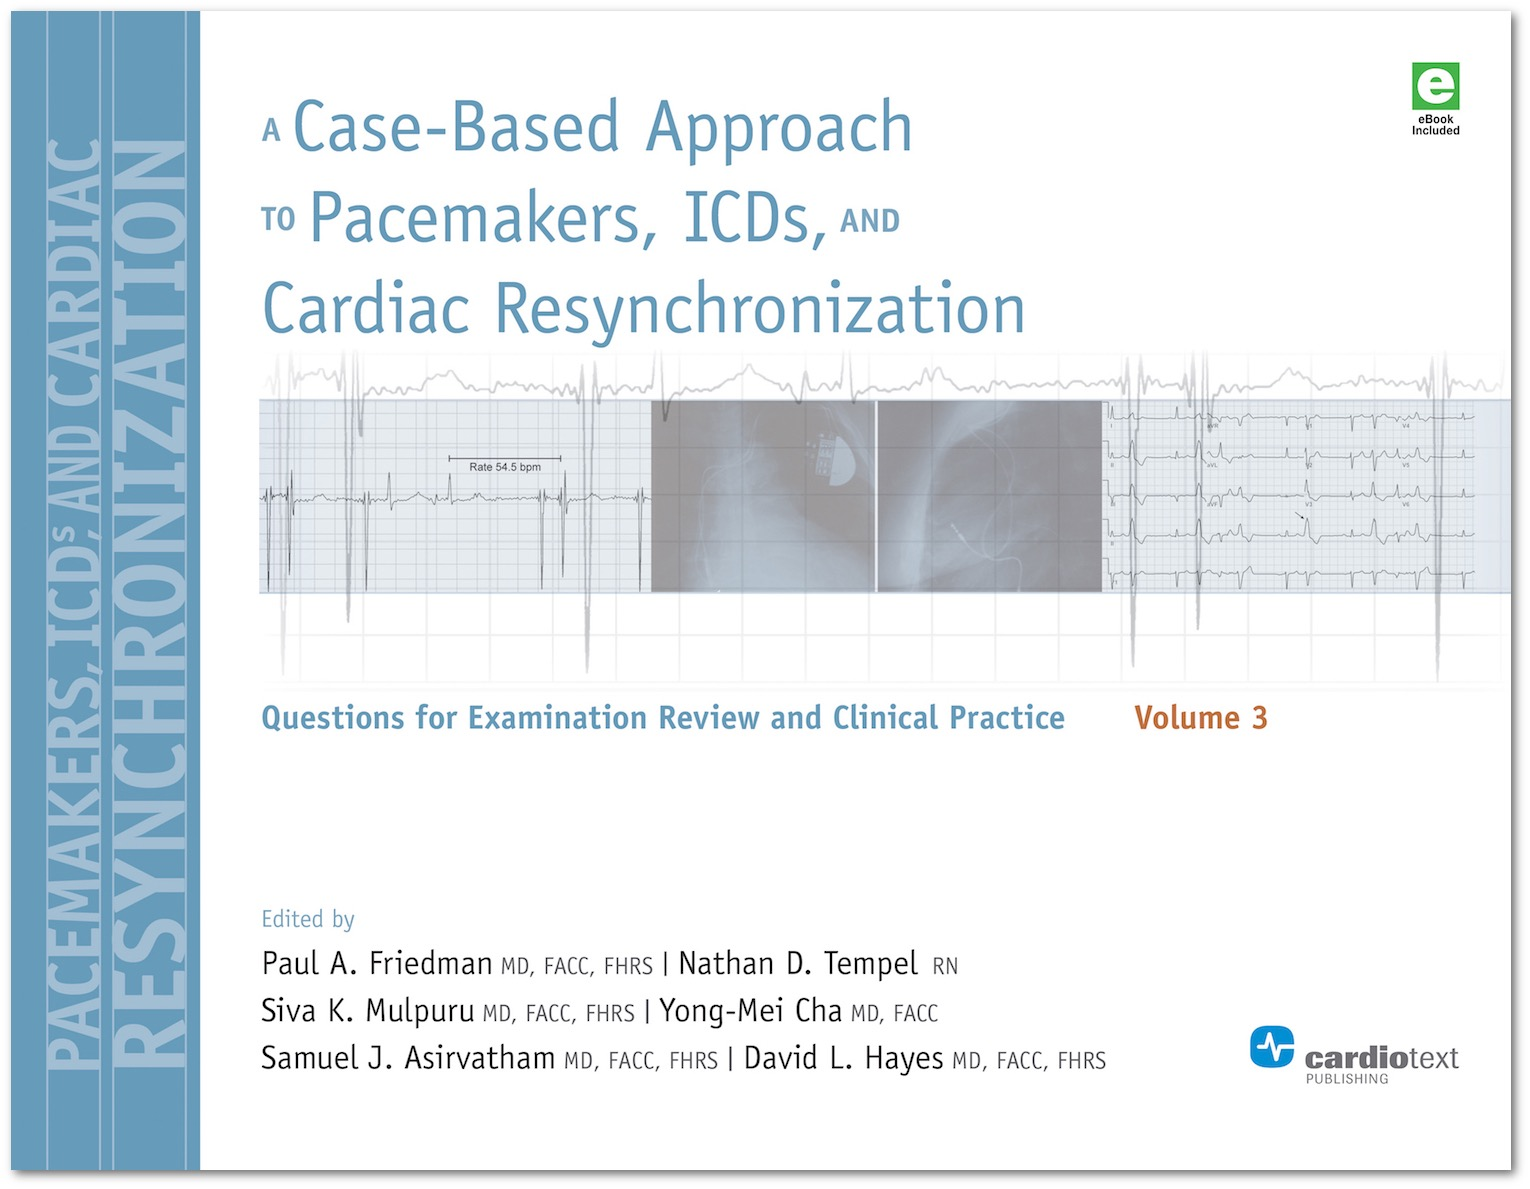 A Case-Based Approach to Pacemakers, ICDs, and Cardiac Resynchronization: Questions for Examination Review and Clinical Practice [Volume 3]